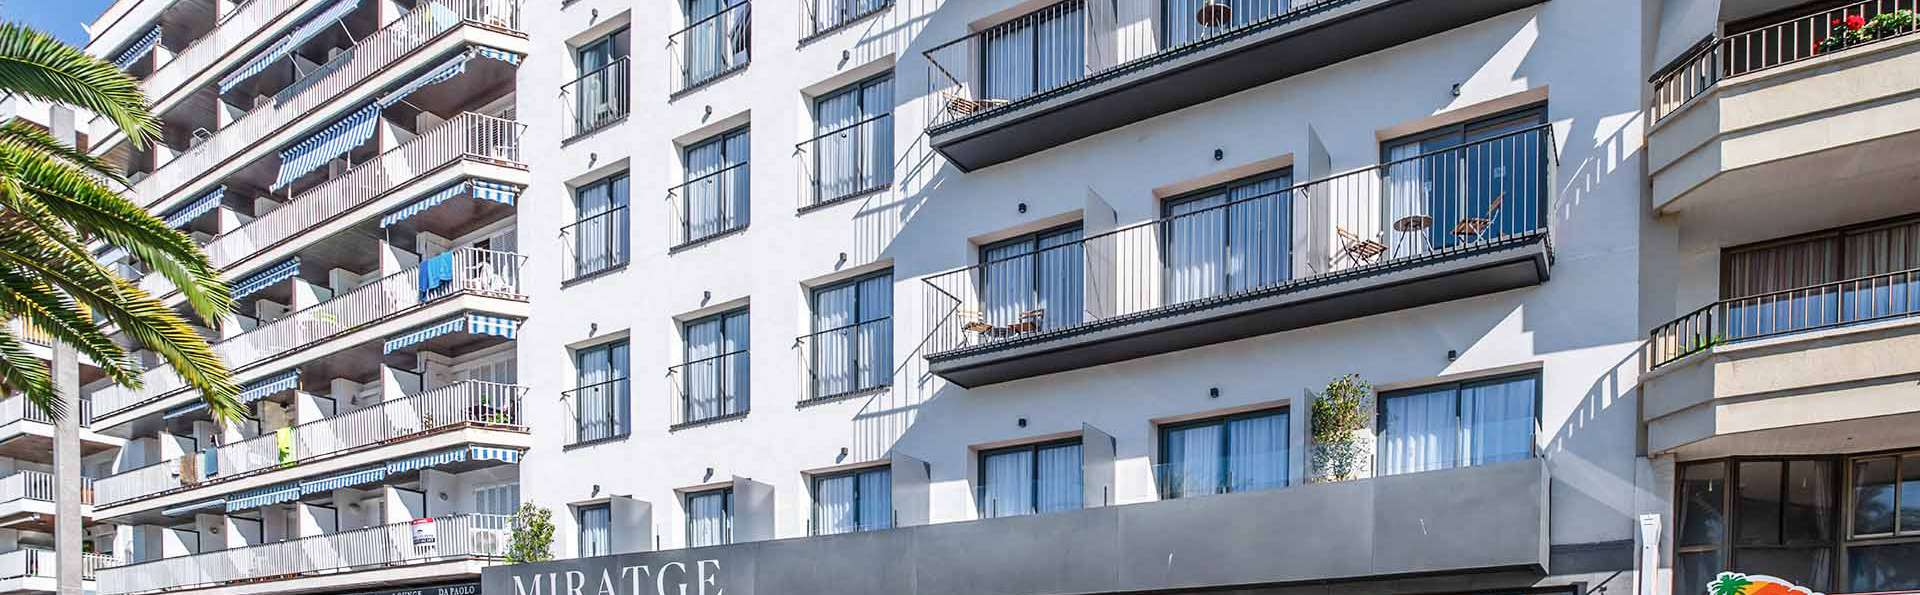 GHT Miratge - Only Adults (+16) - EDIT_edifici-ght-hotel-ght-miratge-lloret_01.jpg